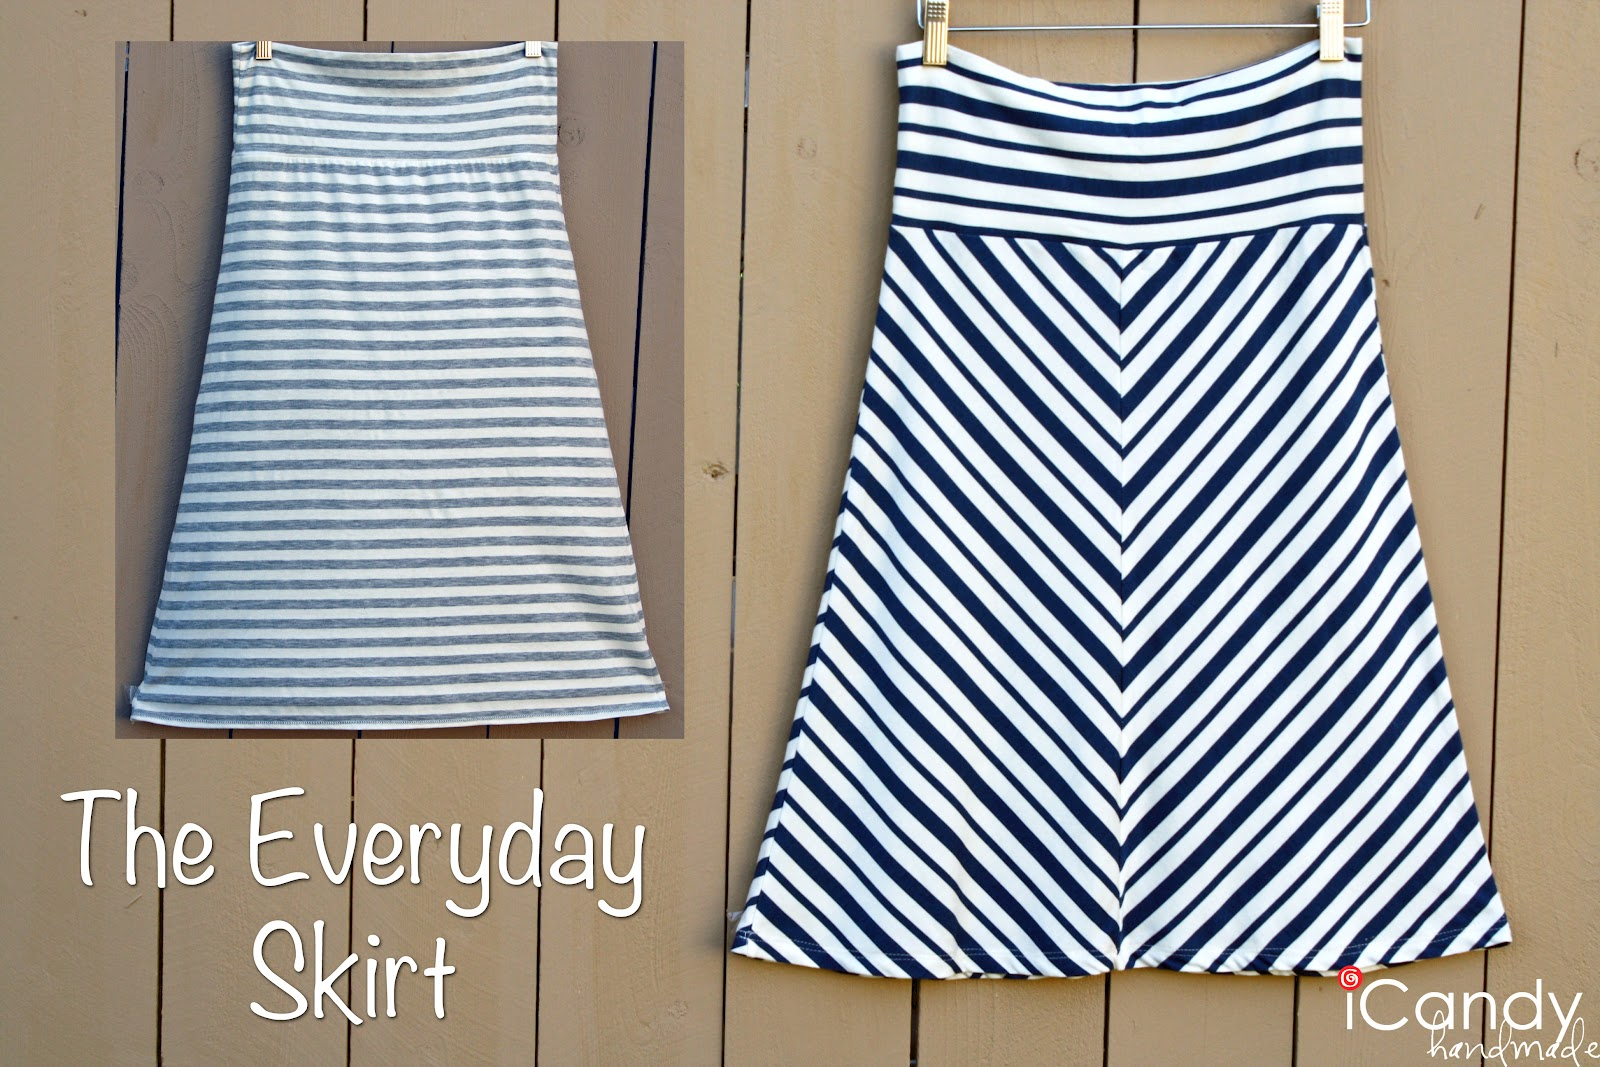 Knitting Skirt Tutorial : Everyday basics the skirt icandy handmade